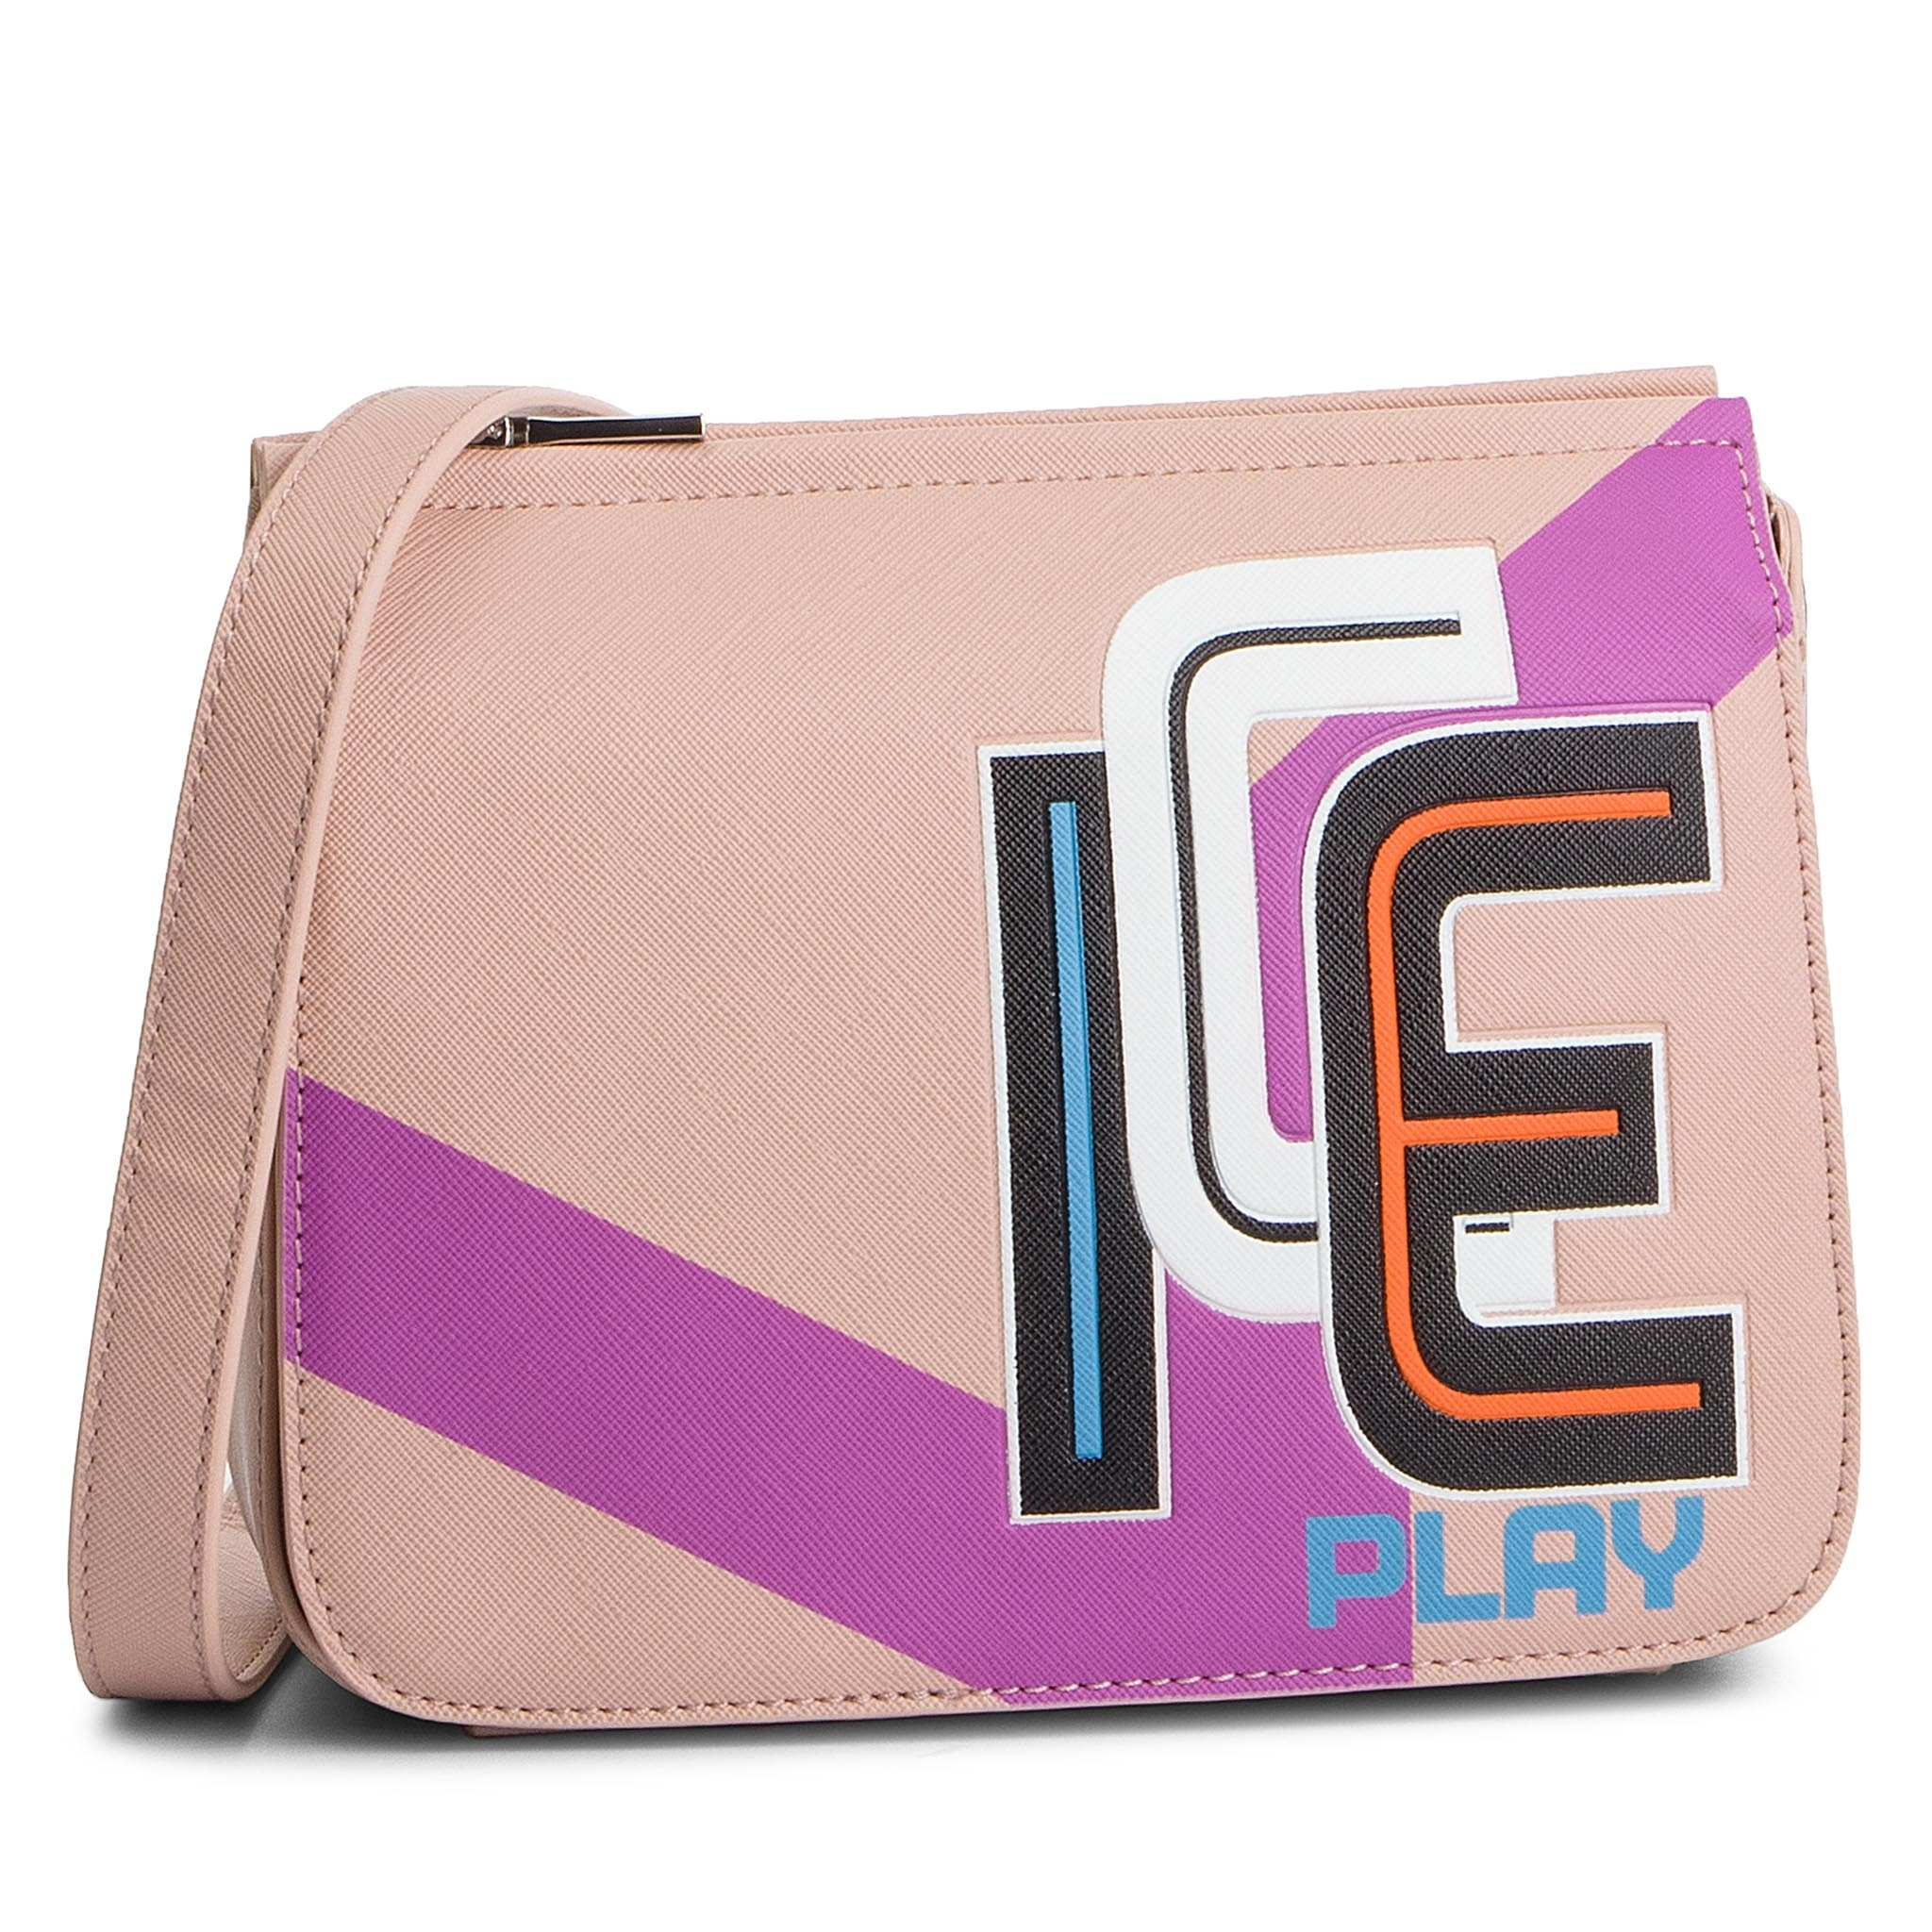 Geantă ICE PLAY - 19E W2M1 7235 6936 4419 Pink